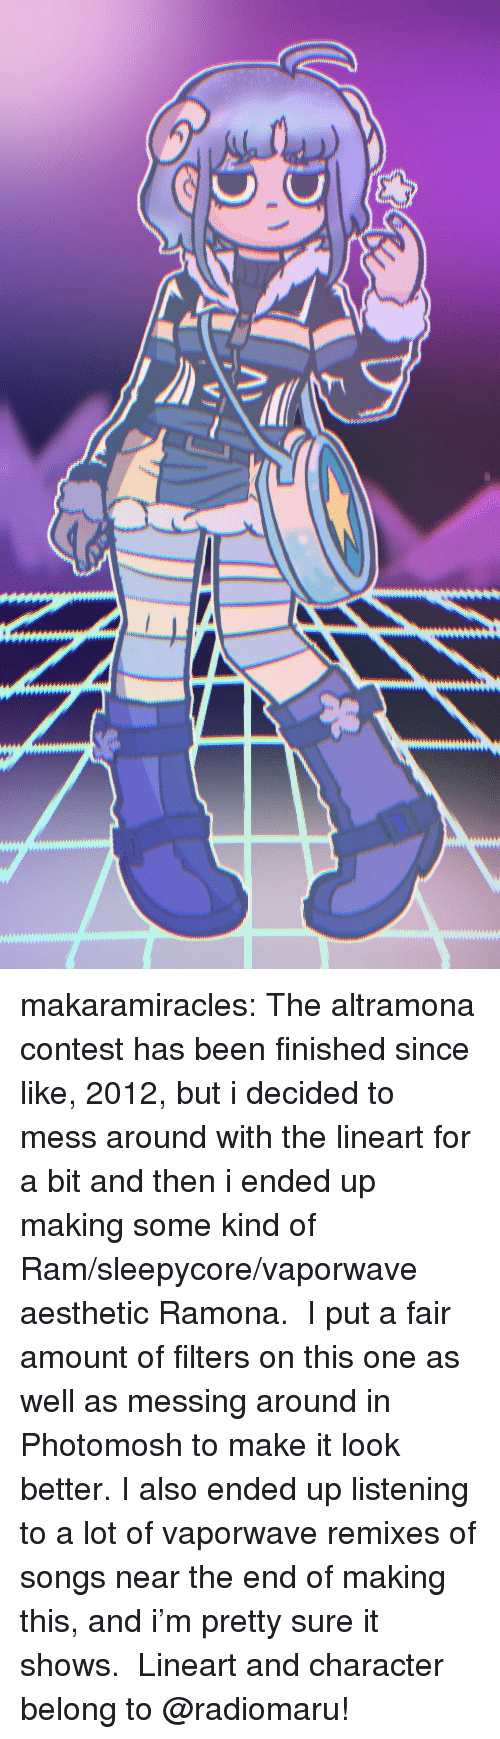 Remixes: makaramiracles: The altramona contest has been finished since like, 2012, but i decided to mess around with the lineart for a bit and then i ended up making some kind of Ram/sleepycore/vaporwave aesthetic Ramona.  I put a fair amount of filters on this one as well as messing around in Photomosh to make it look better. I also ended up listening to a lot of vaporwave remixes of songs near the end of making this, and i'm pretty sure it shows.  Lineart and character belong to @radiomaru!